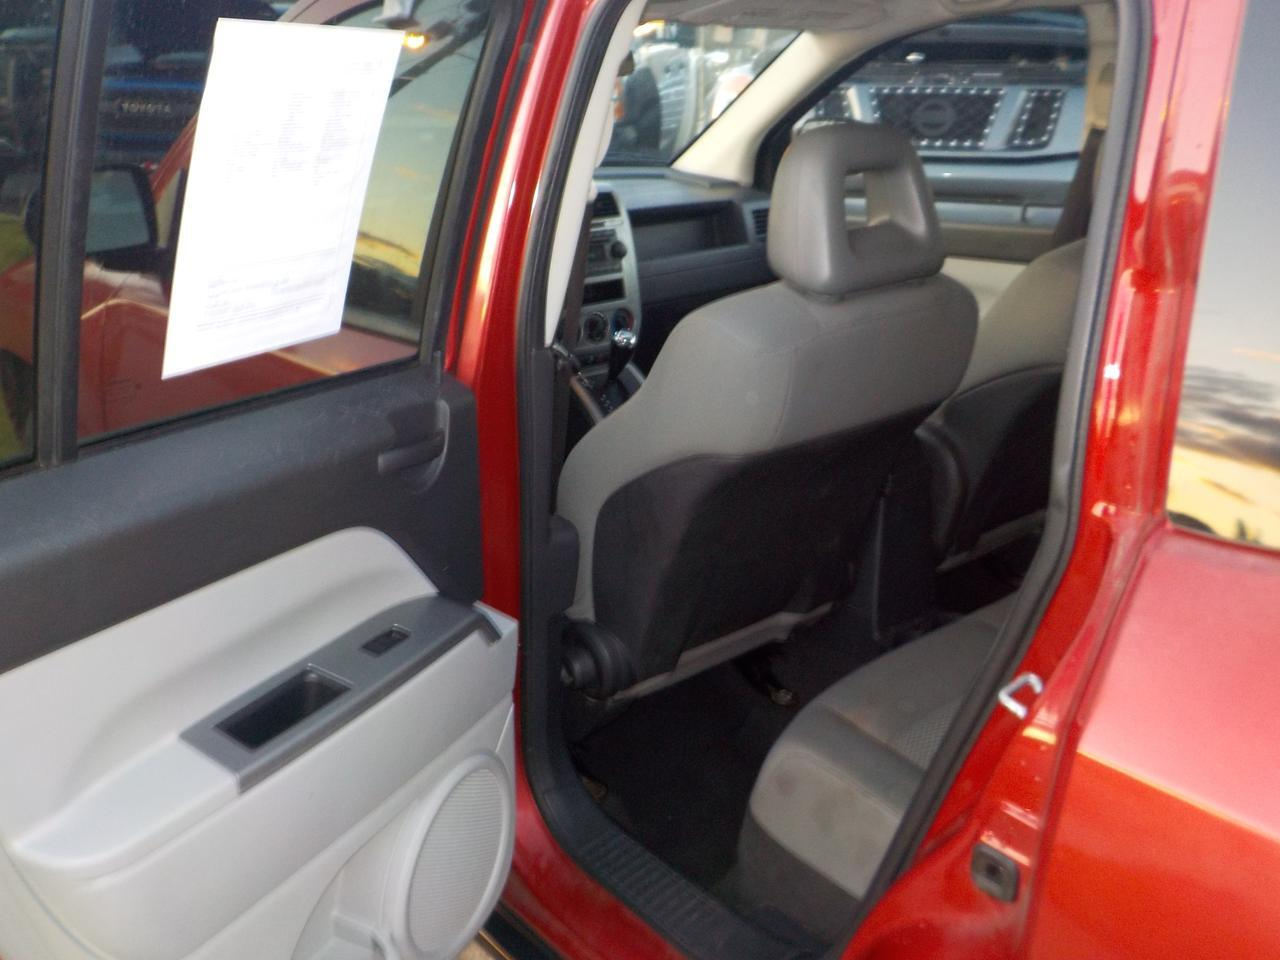 2007 JEEP COMPASS 4X4, POWER WINDOWS, POWER LOCKS, AUXILARY PORT, NO ACCIENTS, REALLY CLEAN, WELL MAINTAINED! Virginia Beach VA